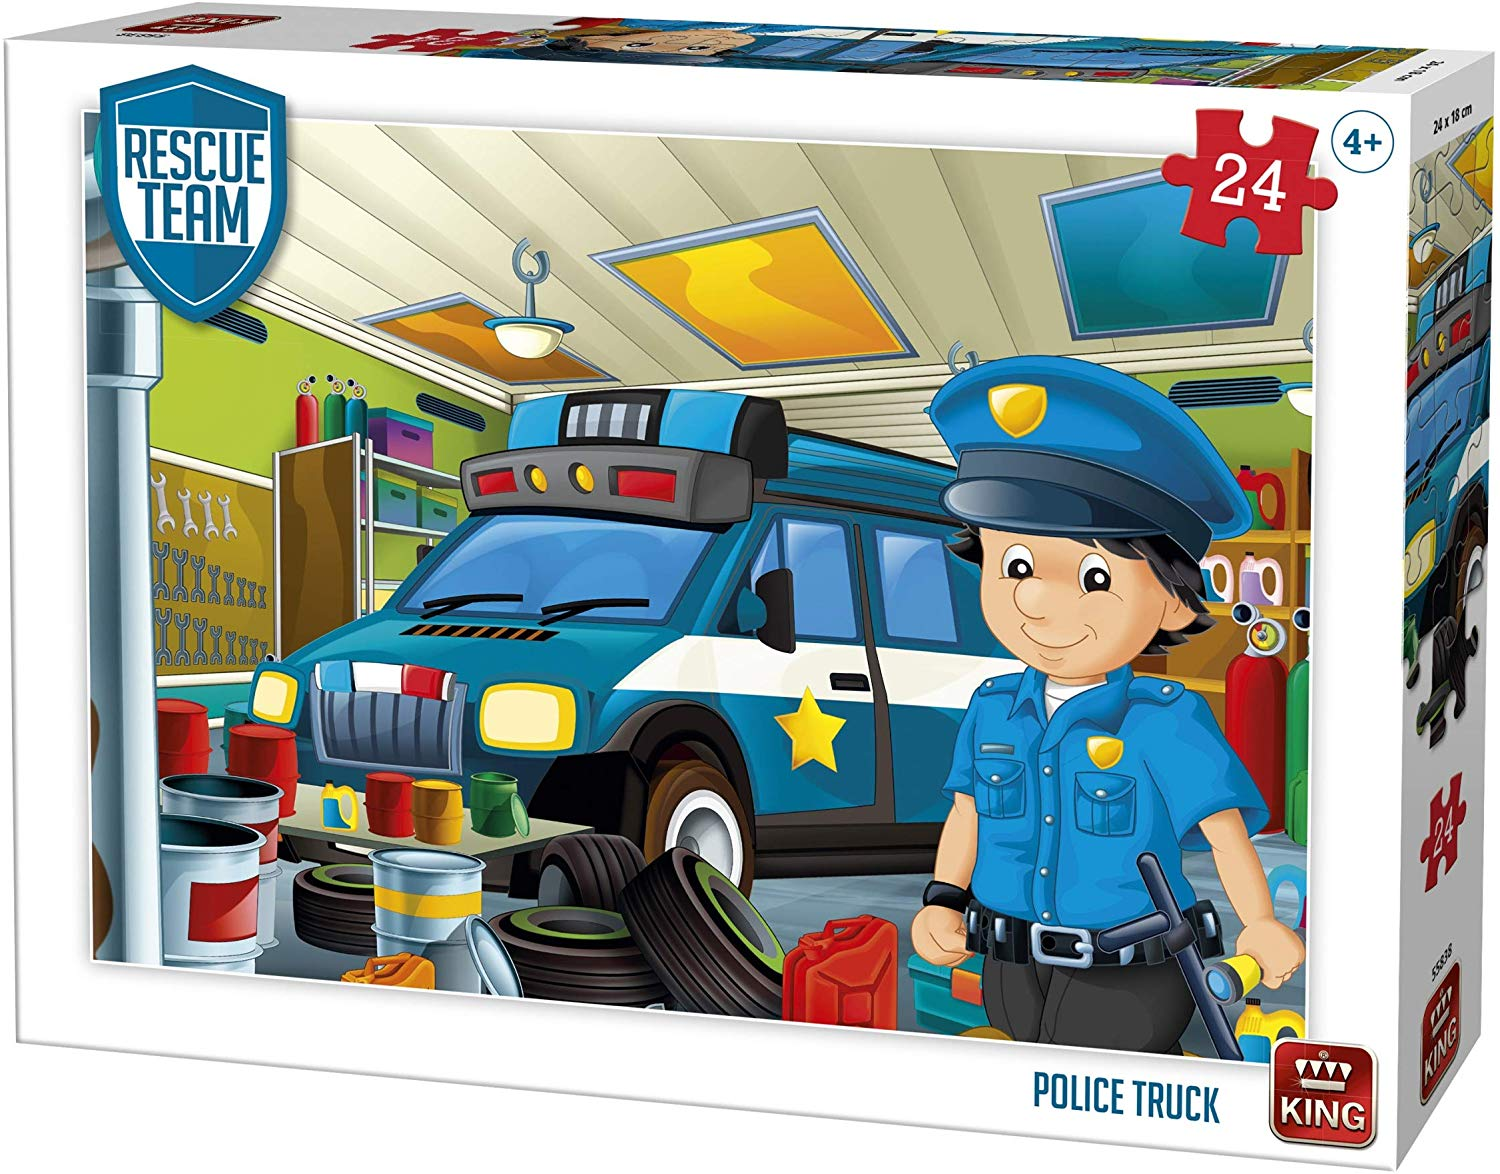 king-international-rescue-team-police-truck-24-teile-puzzle-king-puzzle-55838